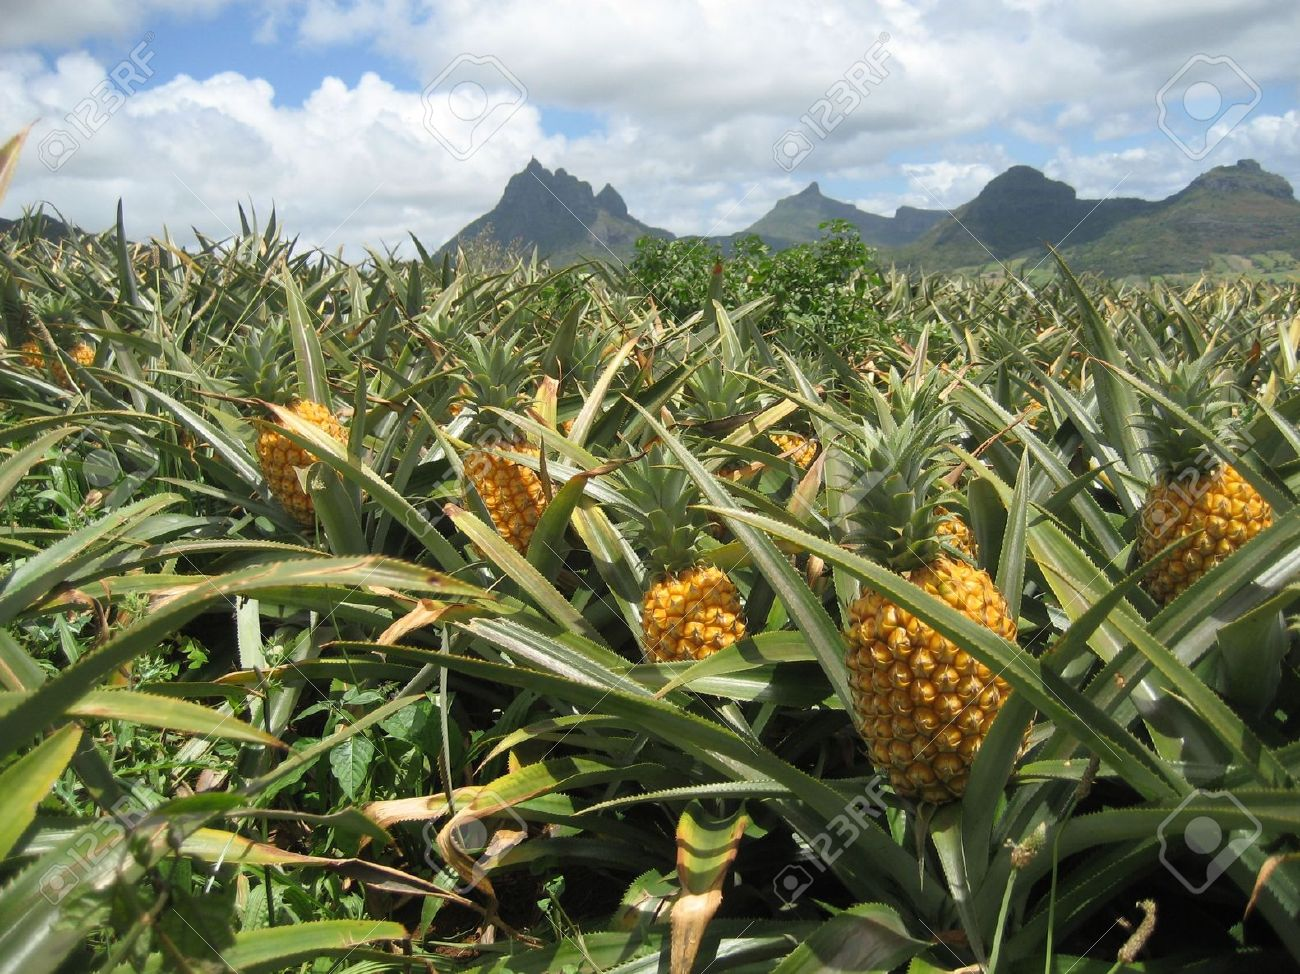 Pineapple field in Les Mariannes, Mauritius Stock Photo - 3682265